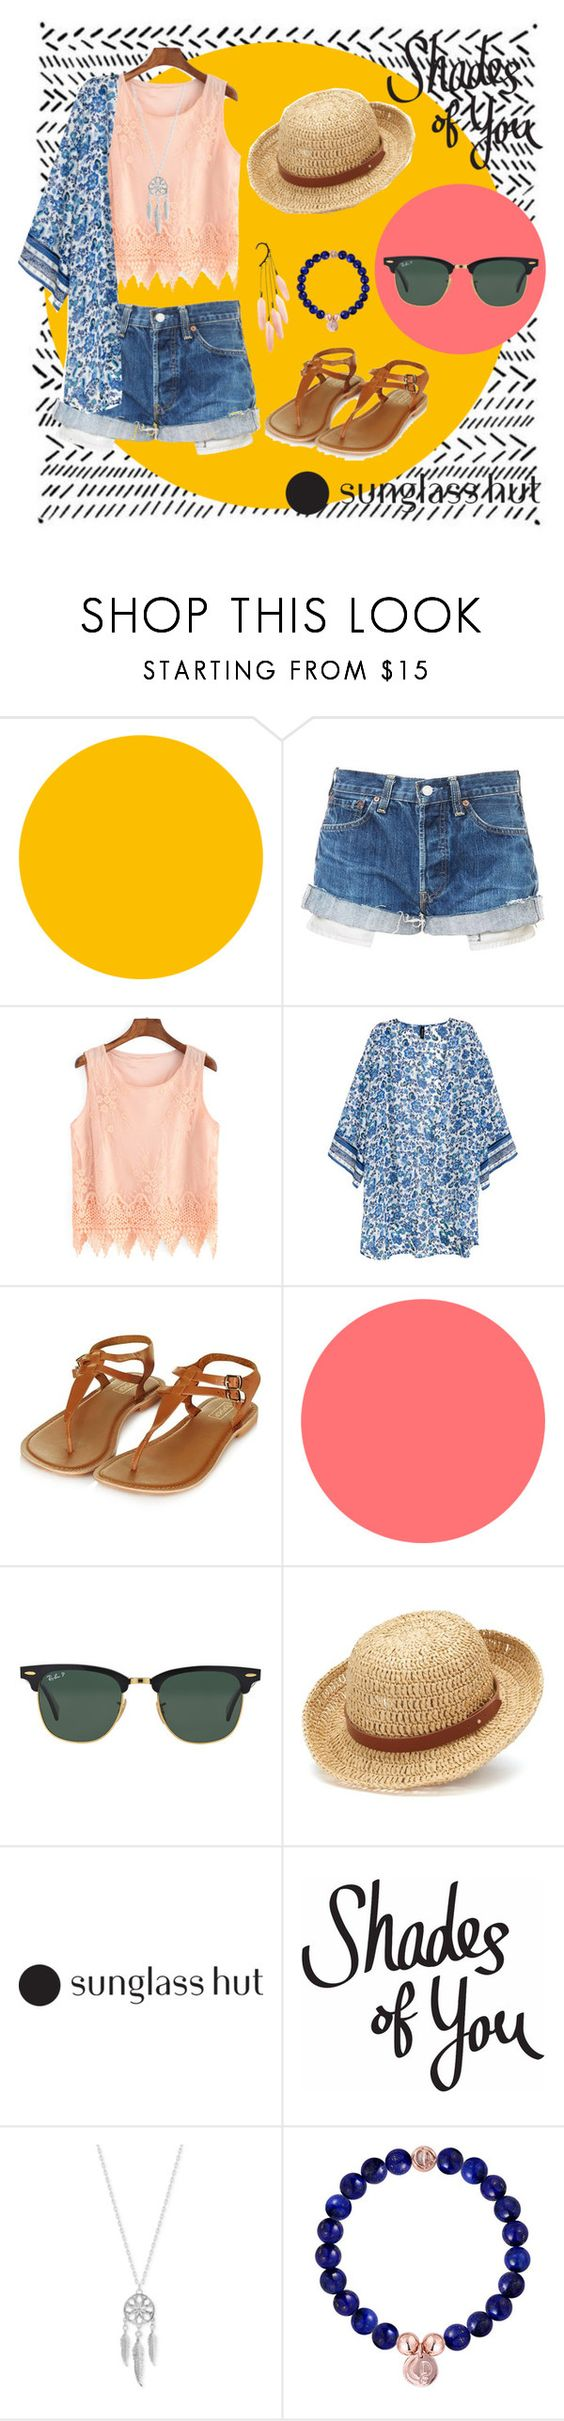 """""""Shades of You: Sunglass Hut Contest Entry"""" by alhyrotzen06 ❤ liked on Polyvore featuring H&M, Topshop, Ray-Ban, Chaps, Lucky Brand and shadesofyou"""